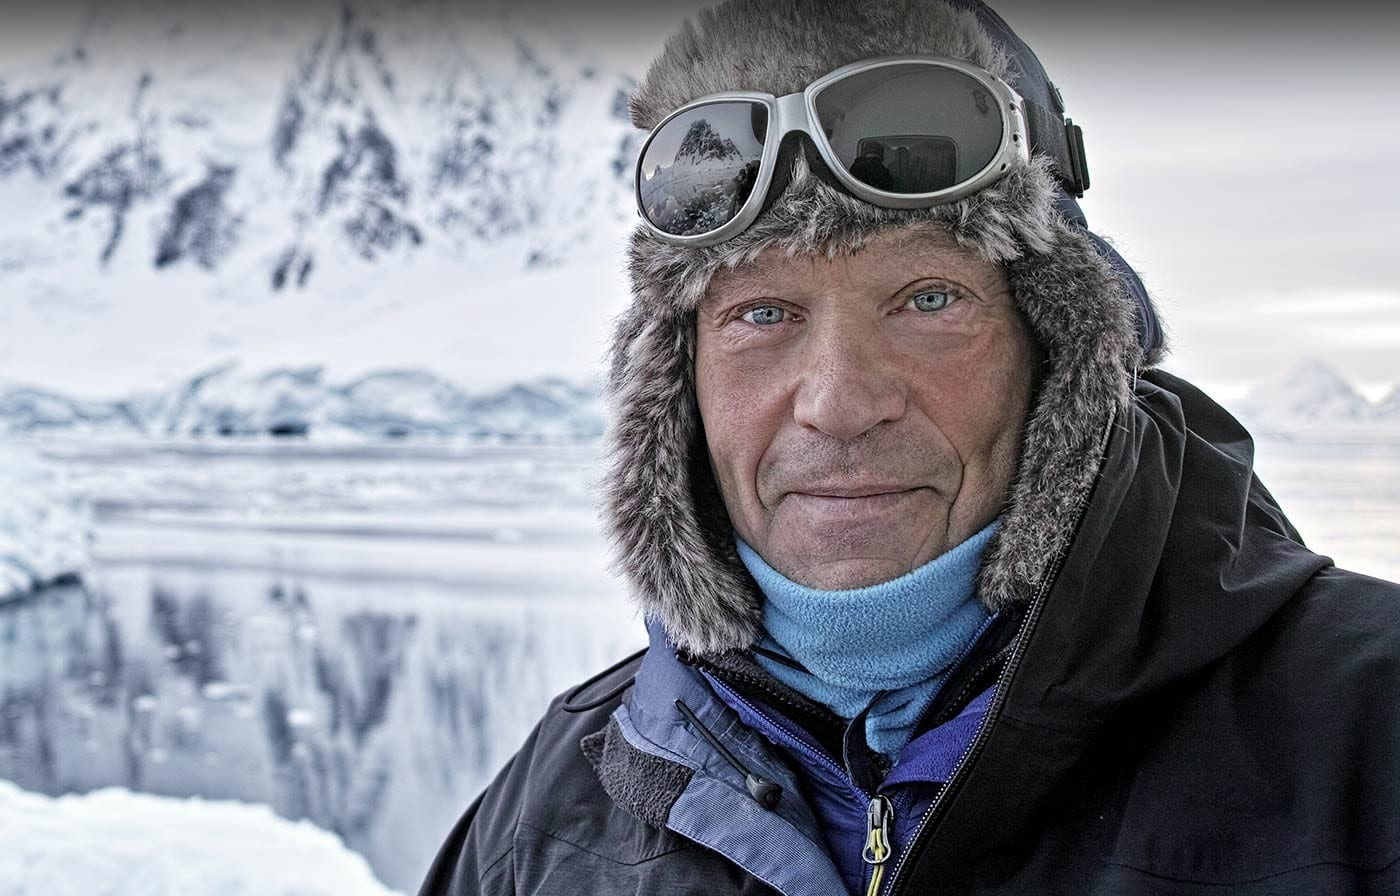 Robert Swan: One of History's Greatest Explorers!